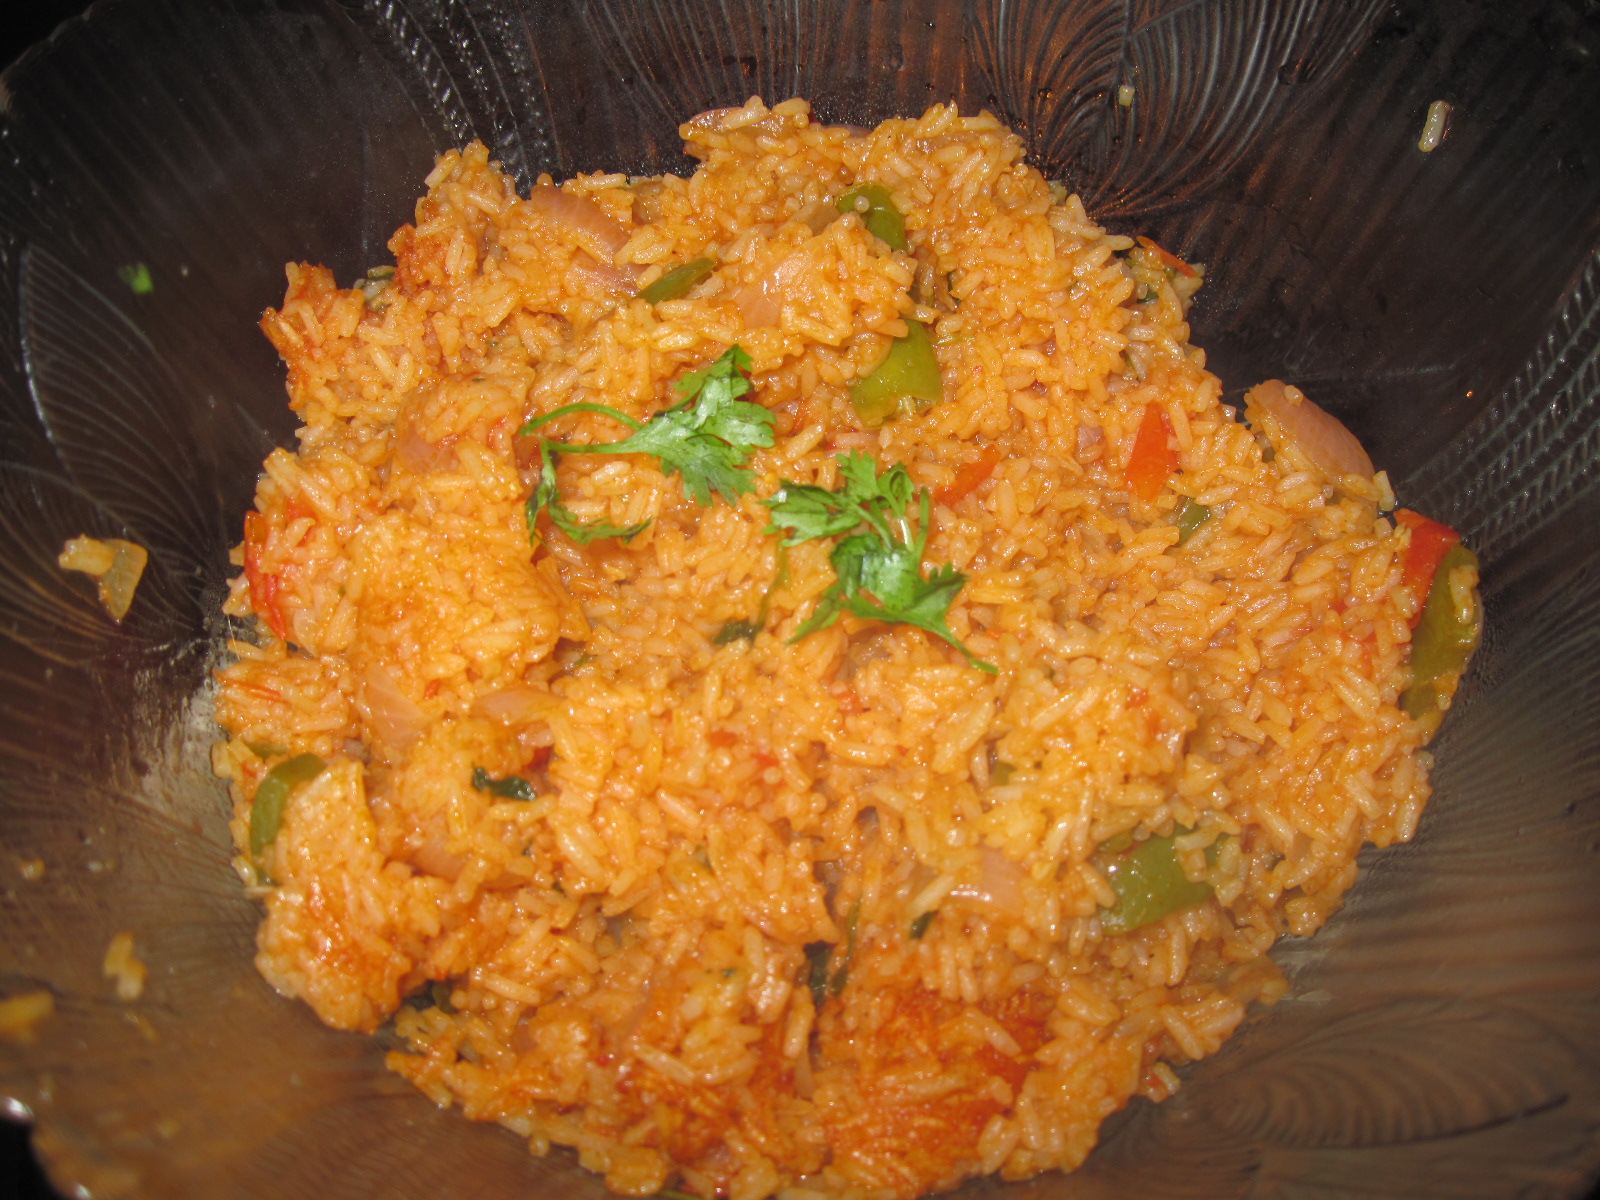 Spanish Style Rice or Mexican rice